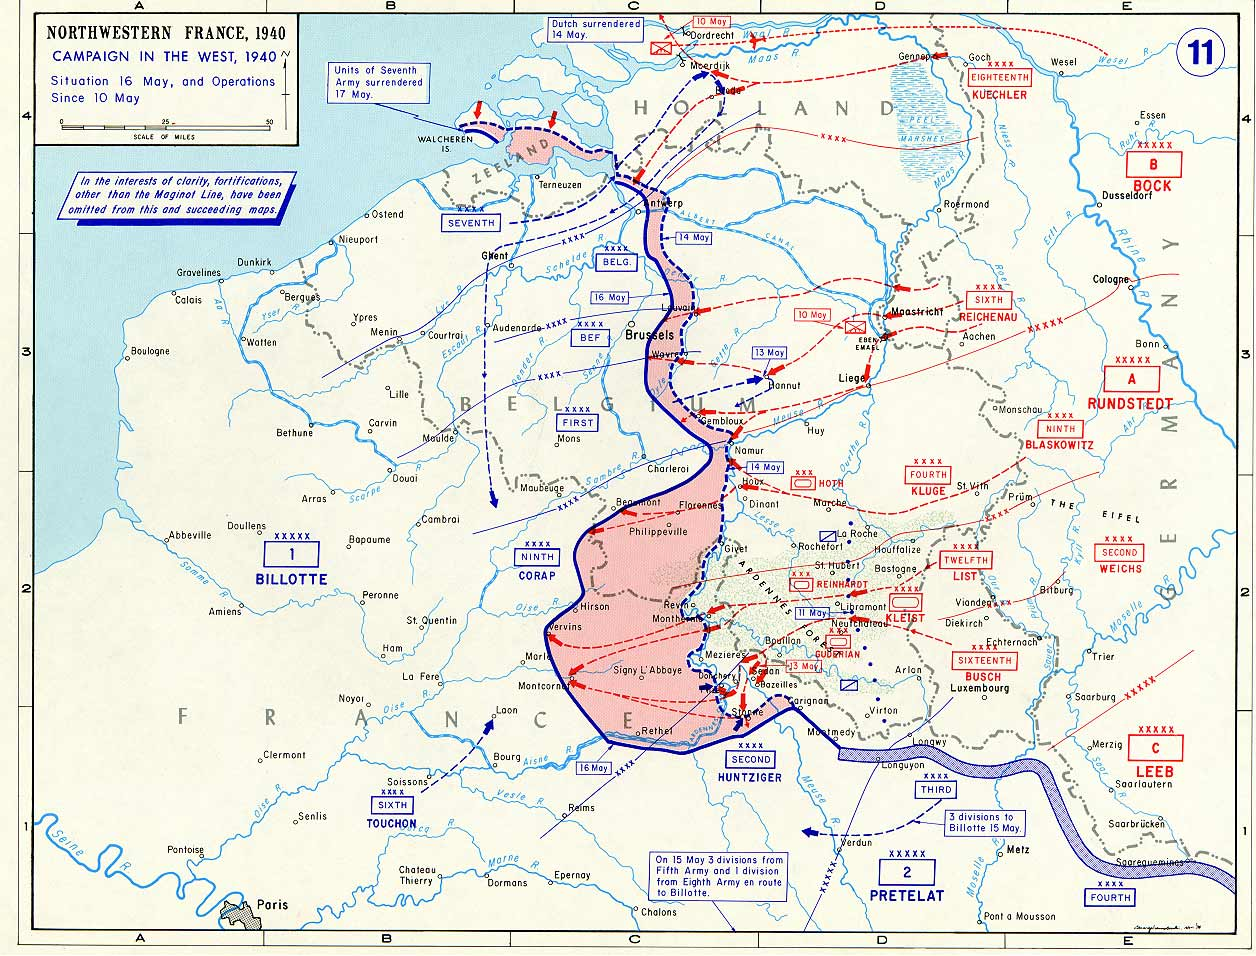 France-Nazi Germany war campaign map, May 10-16 May 1940